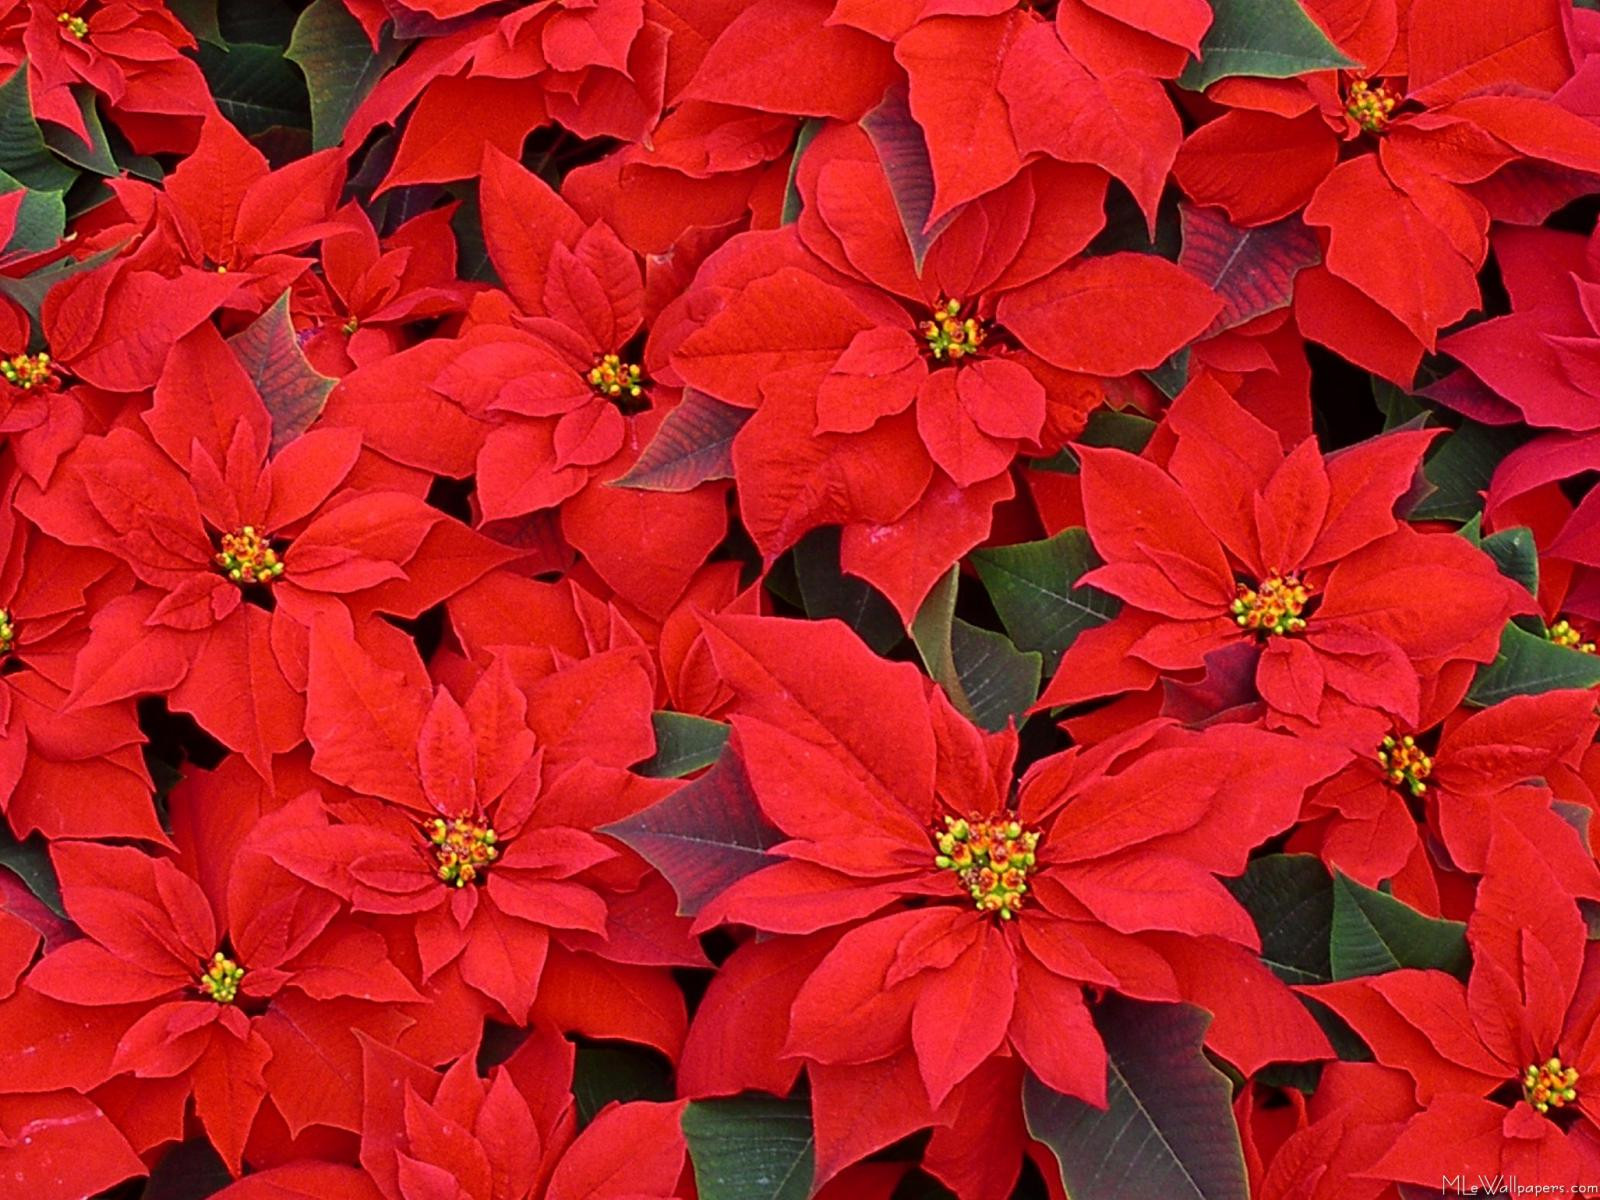 Red Christmas Flower  MLeWallpapers Red Poinsettias